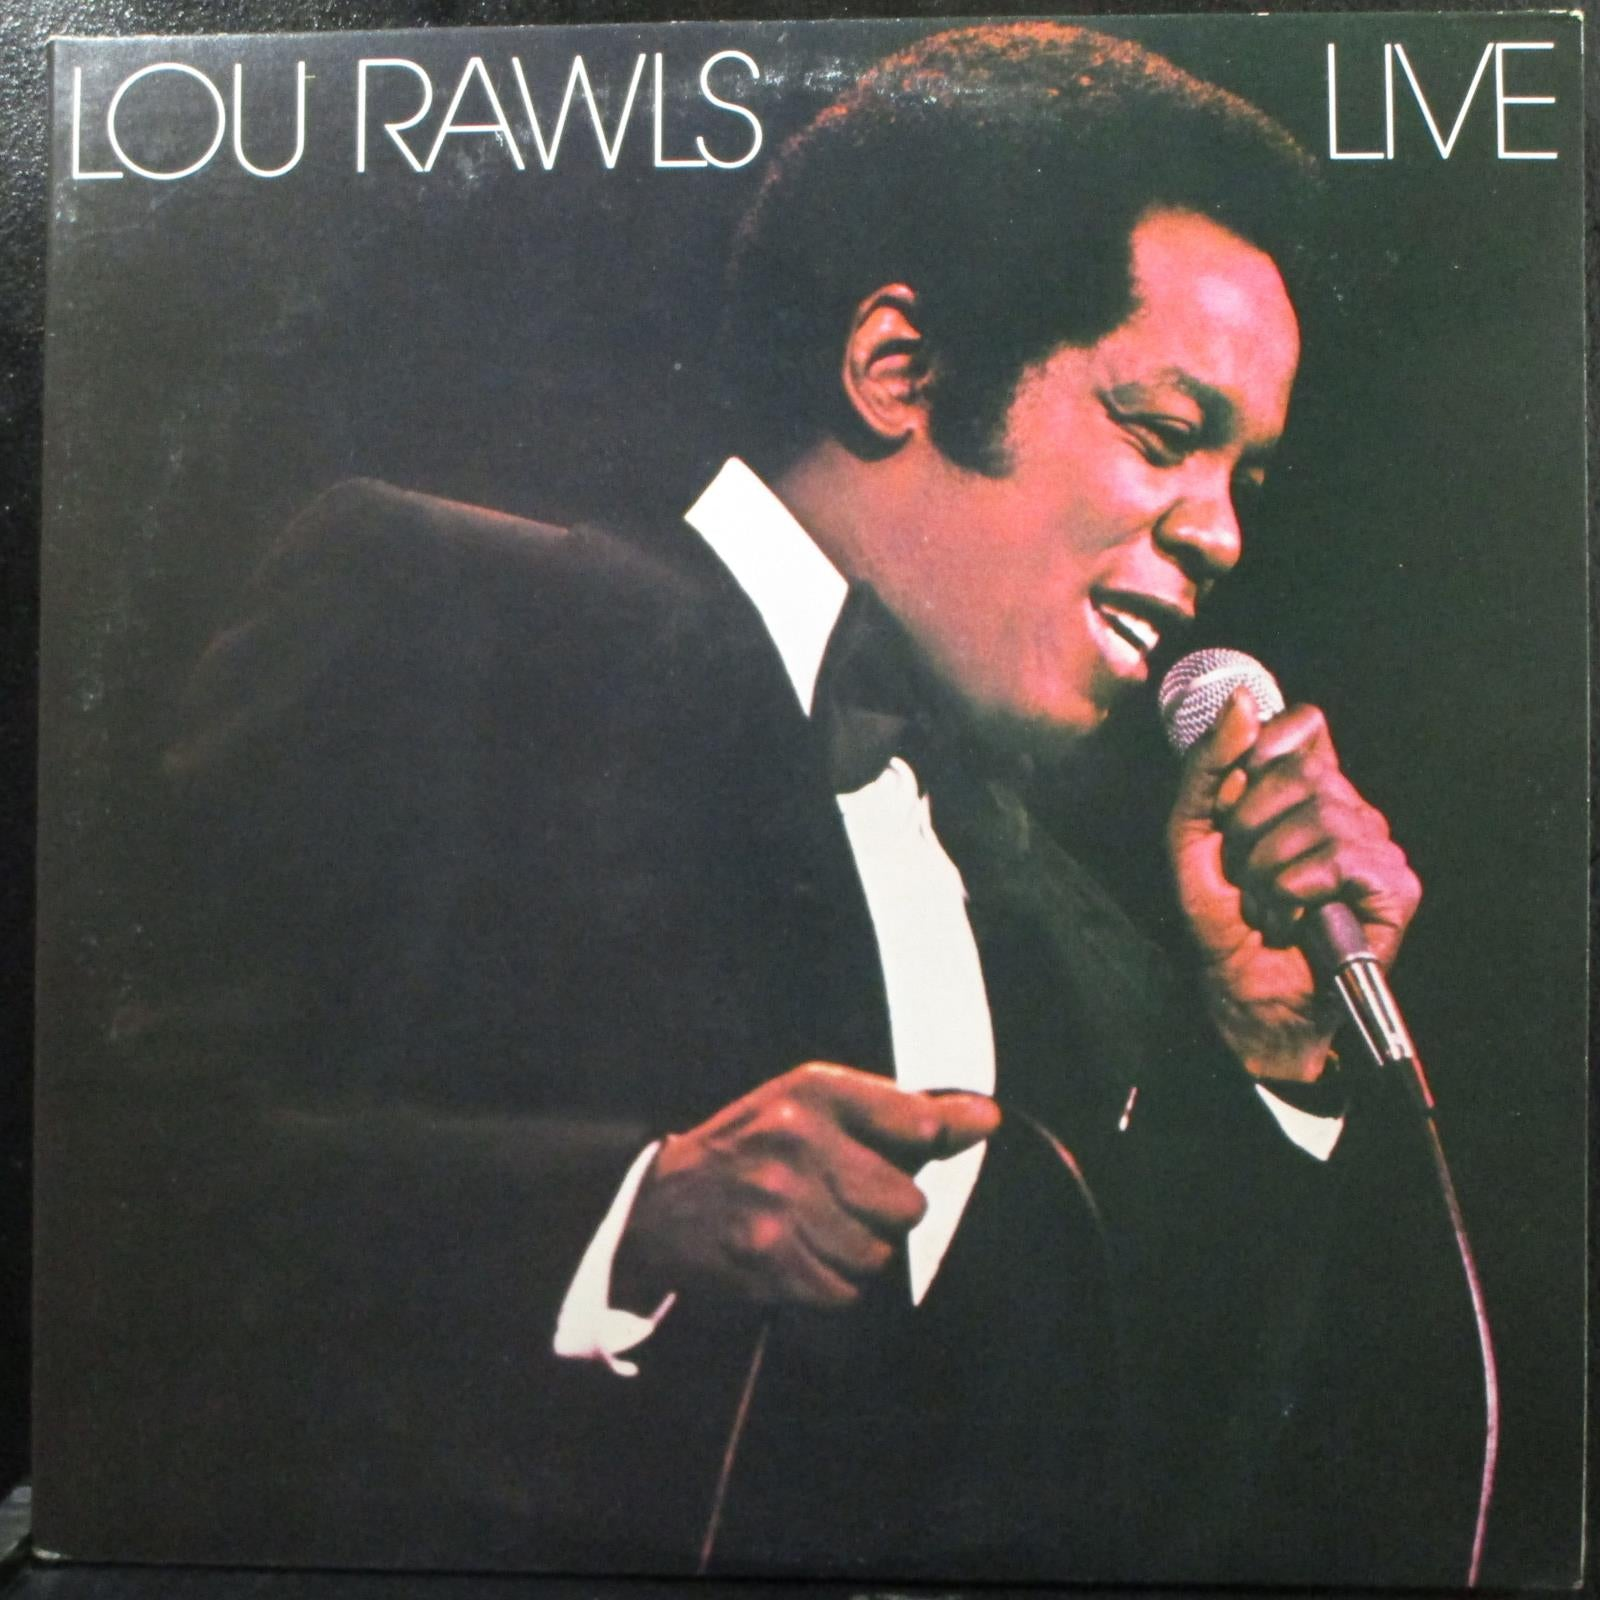 Lou Rawls - Live Mint- 2 LP Philadelphia International PZ2 35517 USA 1978